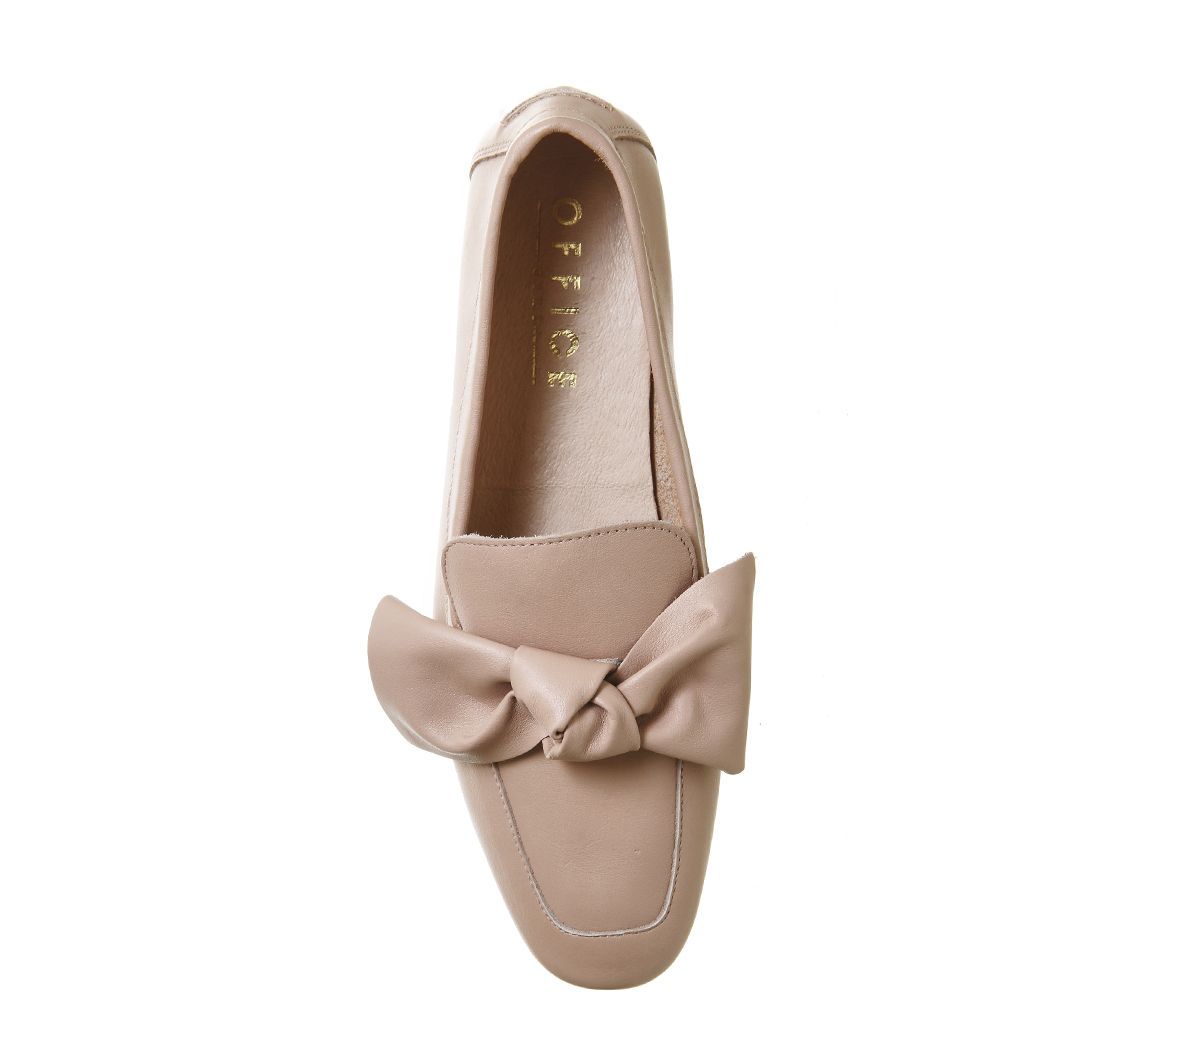 8ea72f113 Nude Leather Office Possum Bow Loafer - £68 OFFICE.co.uk. | shoes ...